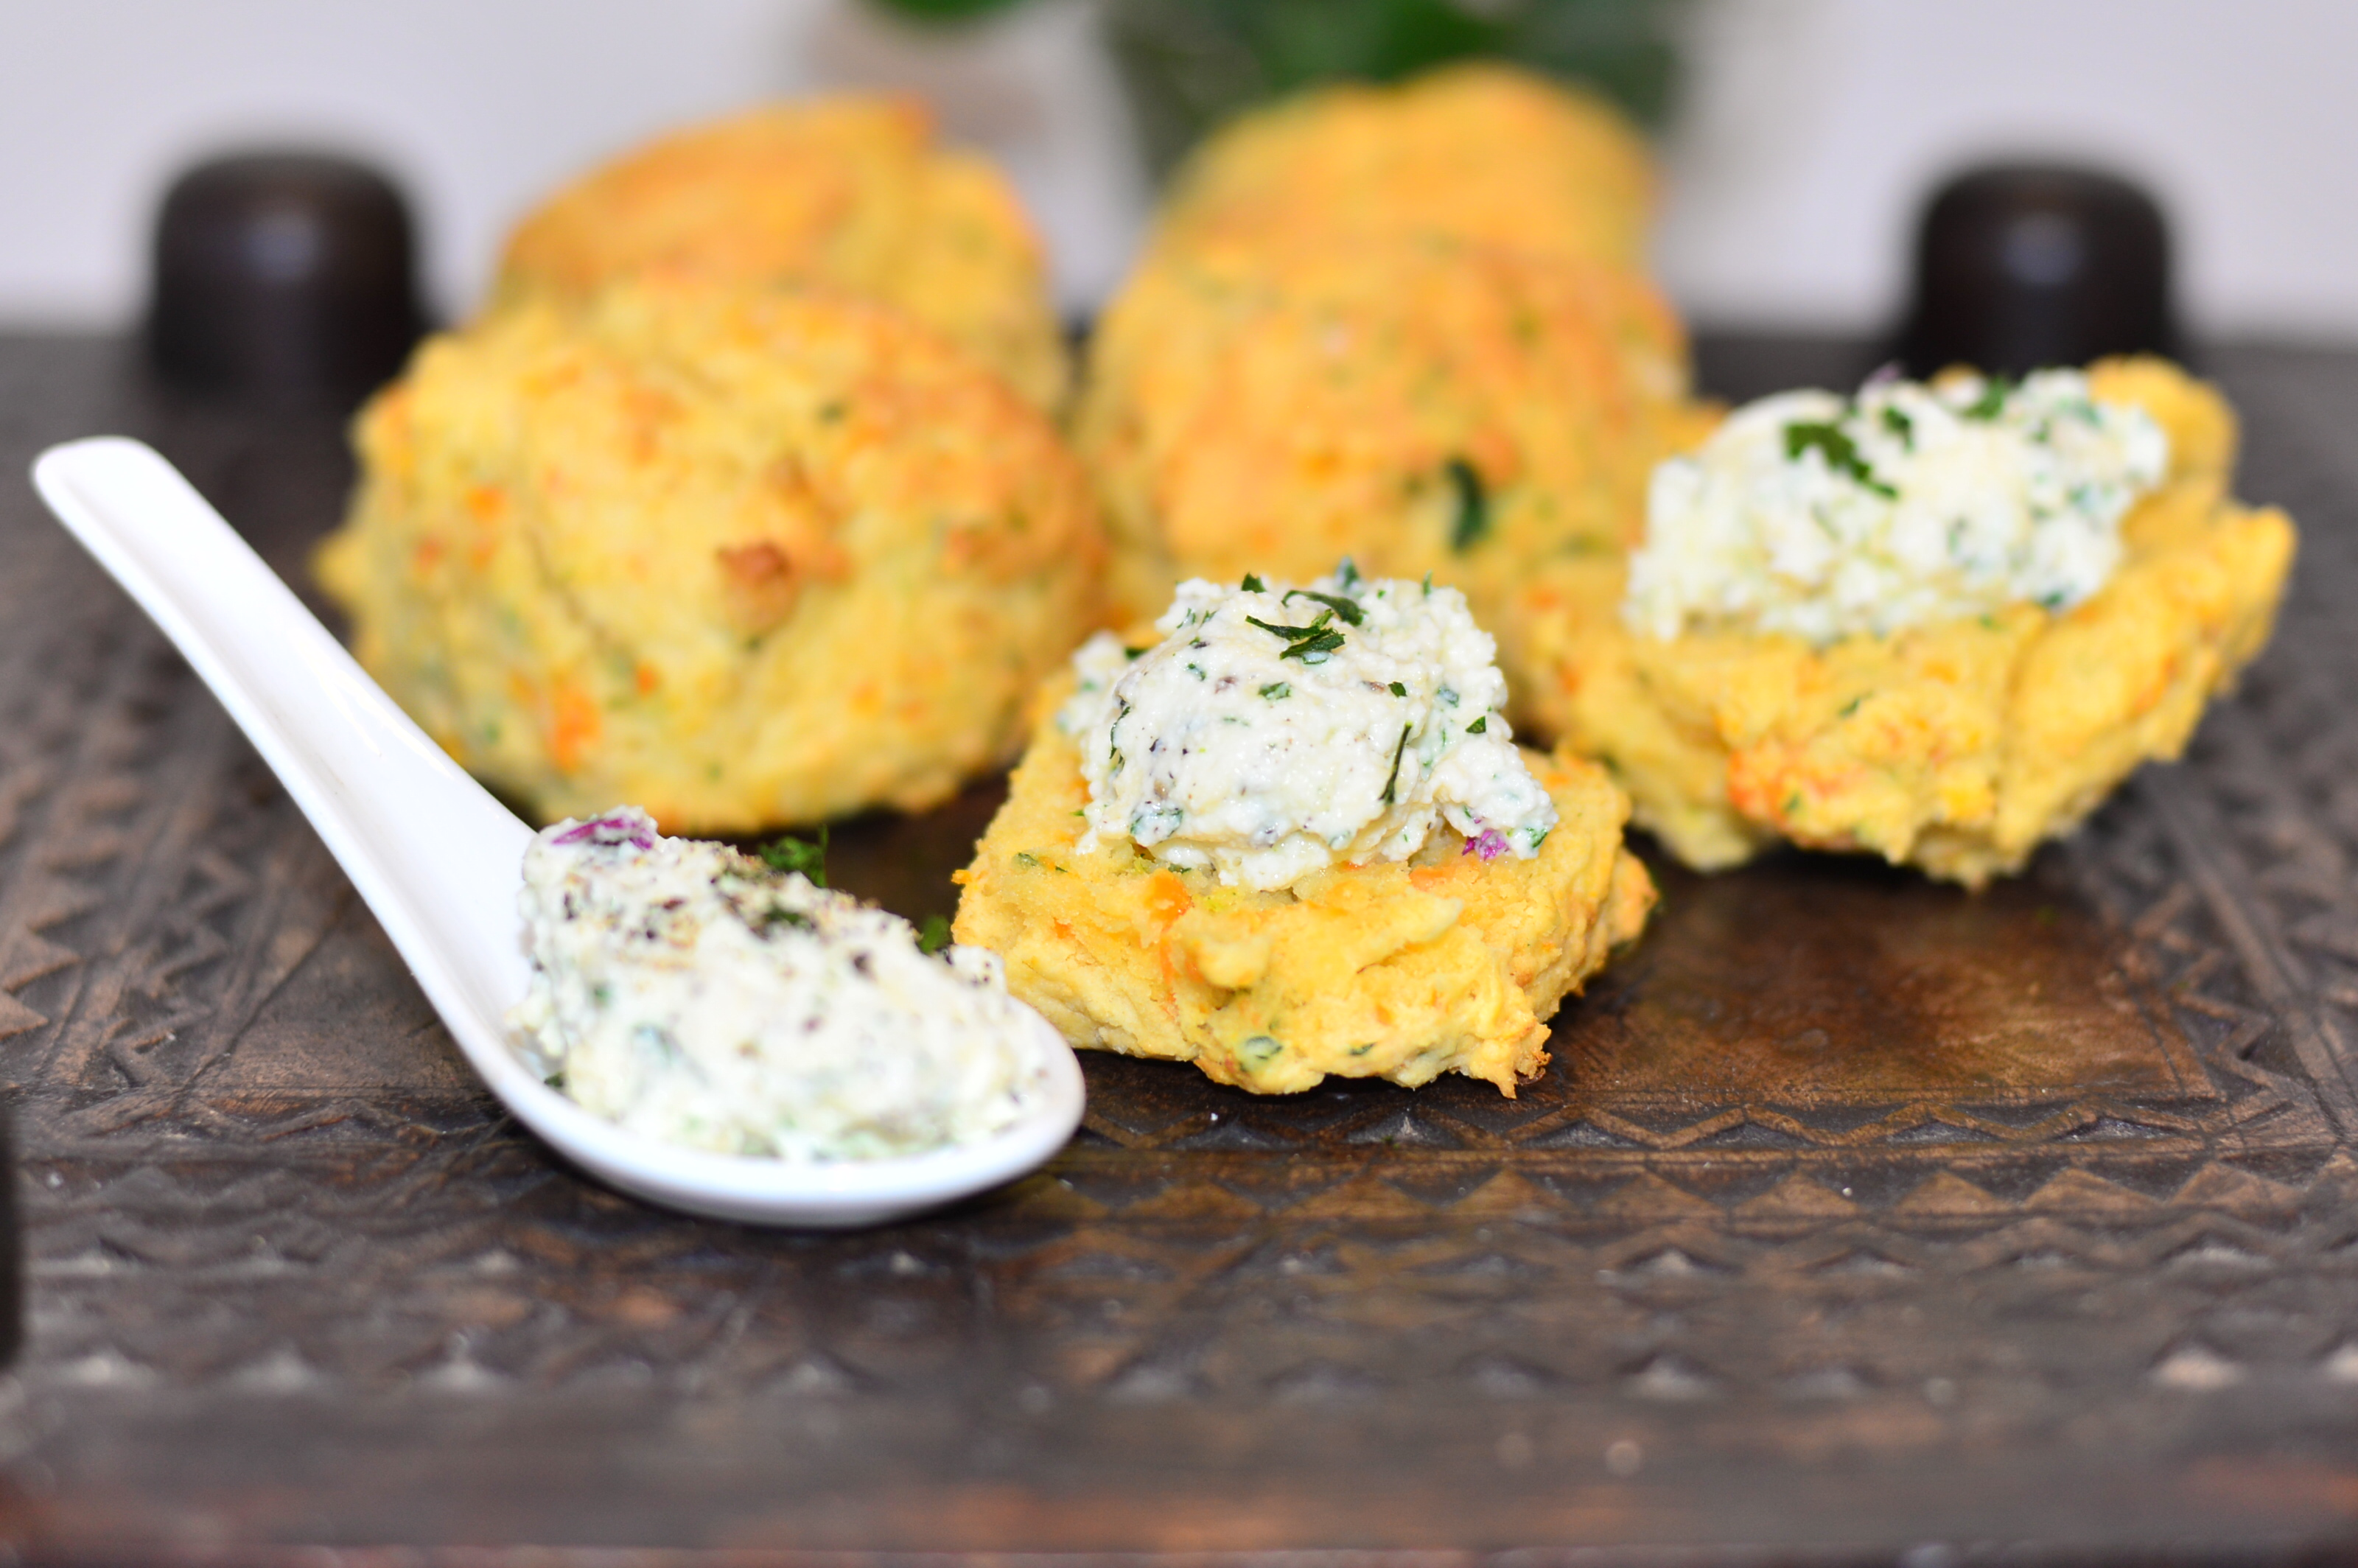 MOTHER'S DAY Pumpkin, Parsley & Parmesan Scones